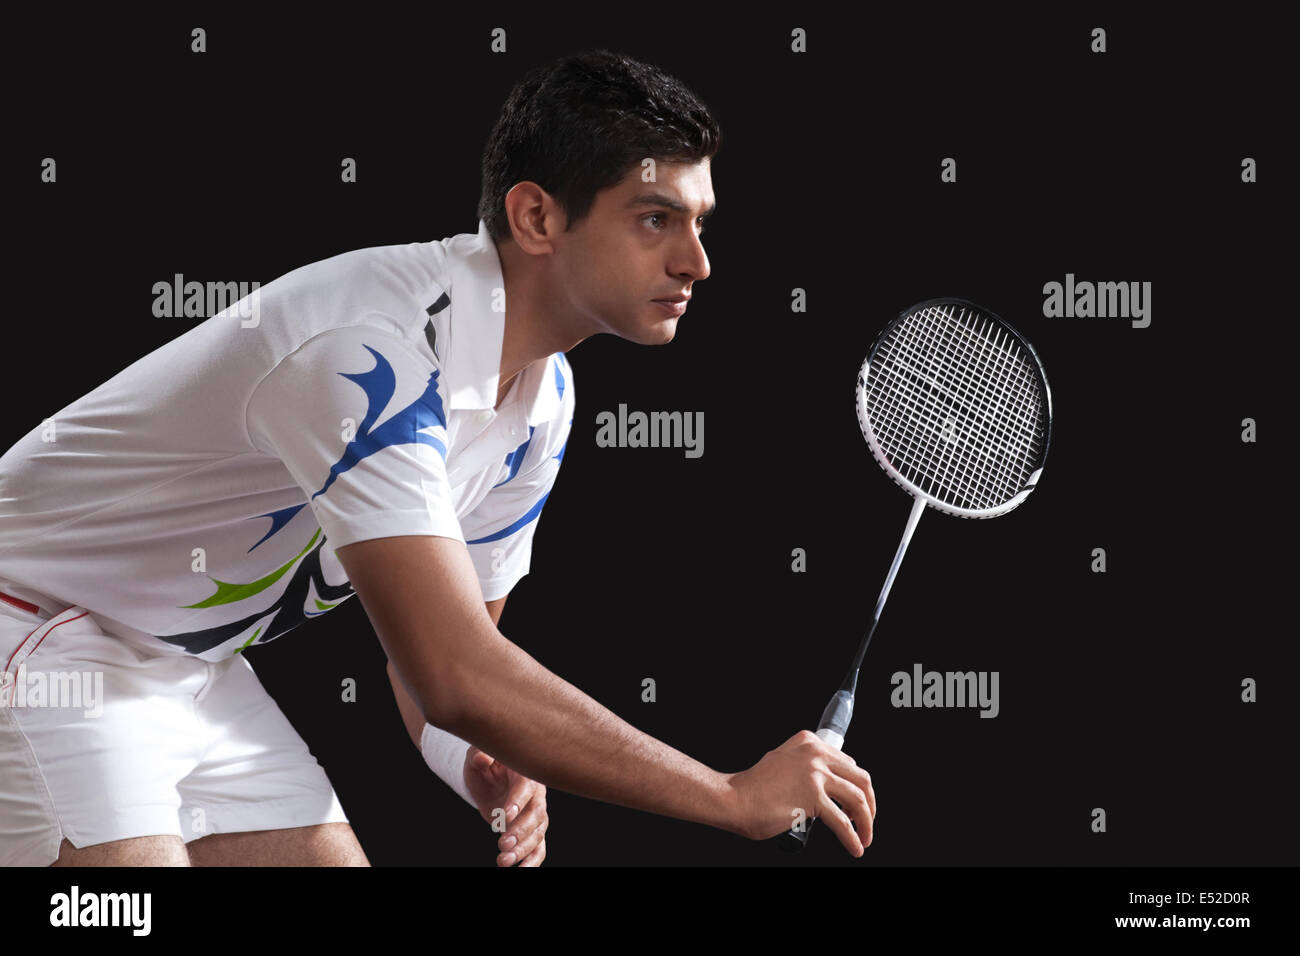 Young male player with racket playing badminton isolated over black background - Stock Image